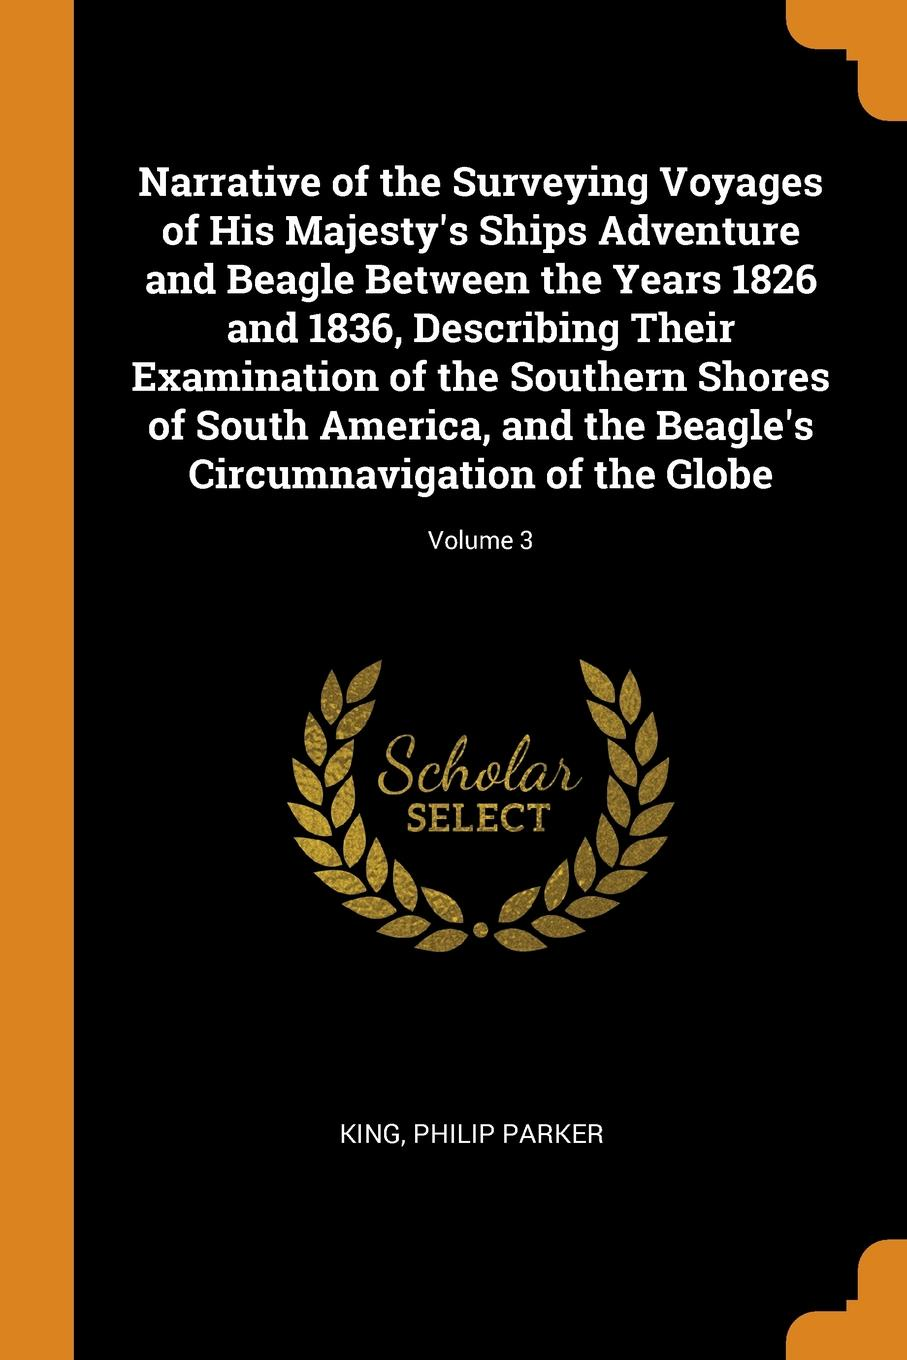 Narrative of the Surveying Voyages of His Majesty.s Ships Adventure and Beagle Between the Years 1826 and 1836, Describing Their Examination of the Southern Shores of South America, and the Beagle.s Circumnavigation of the Globe; Volume 3